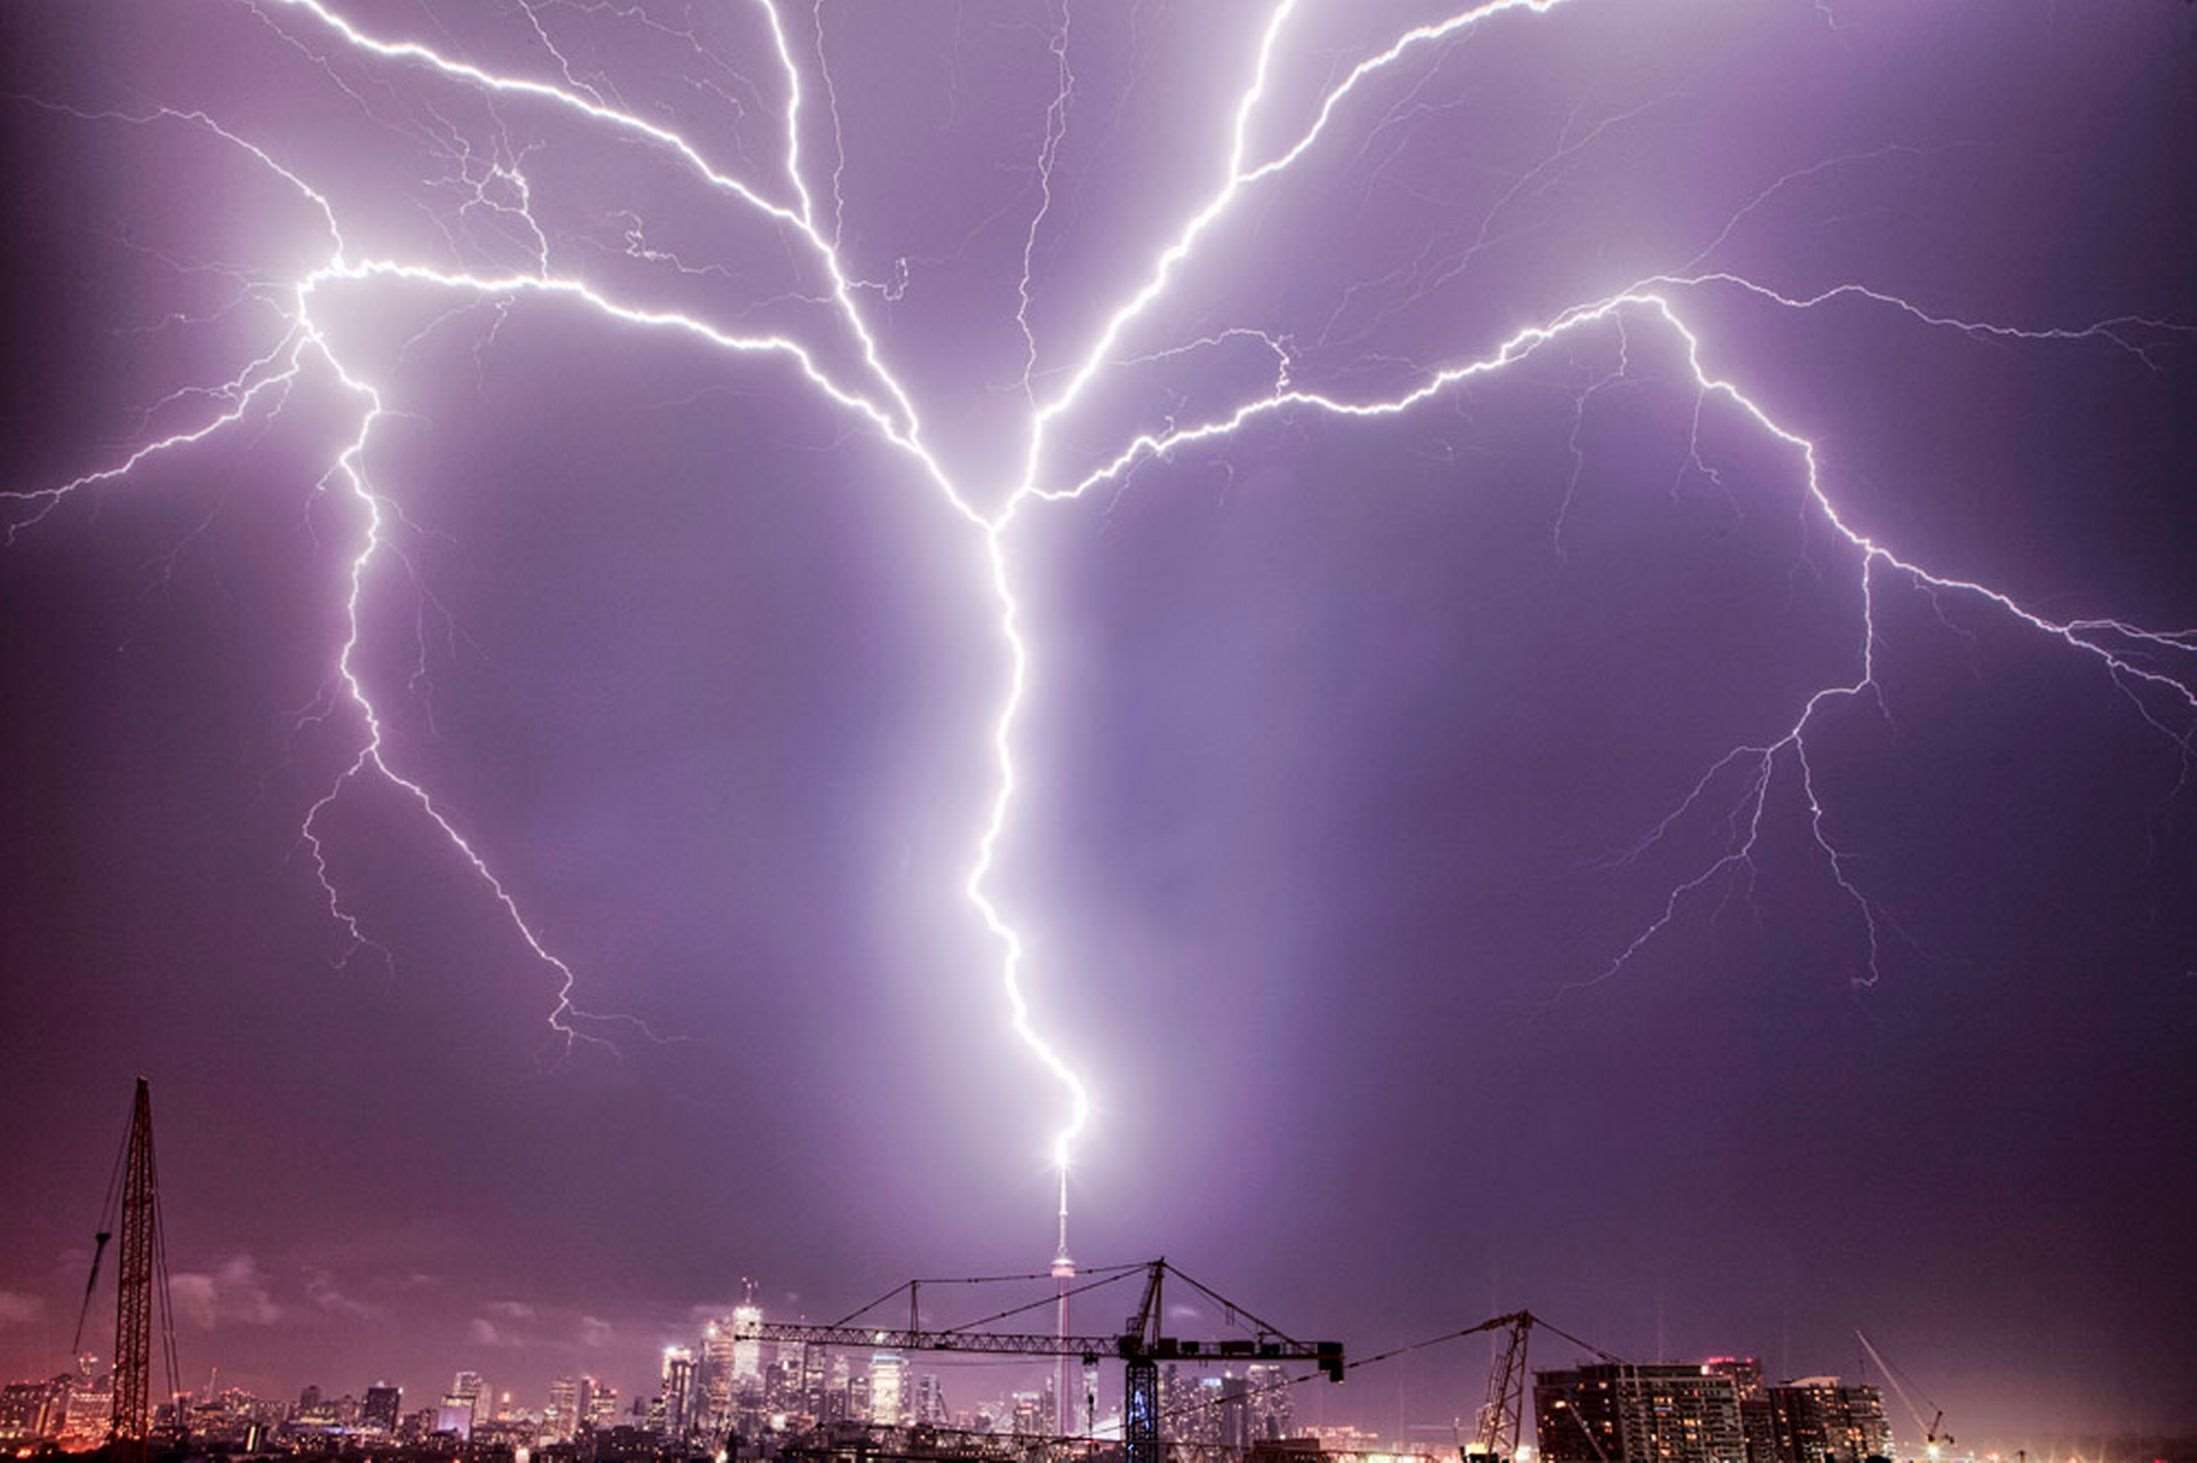 £££Fee-fo-use-Lightning-strikes-the-CN-Tower-in-Canada